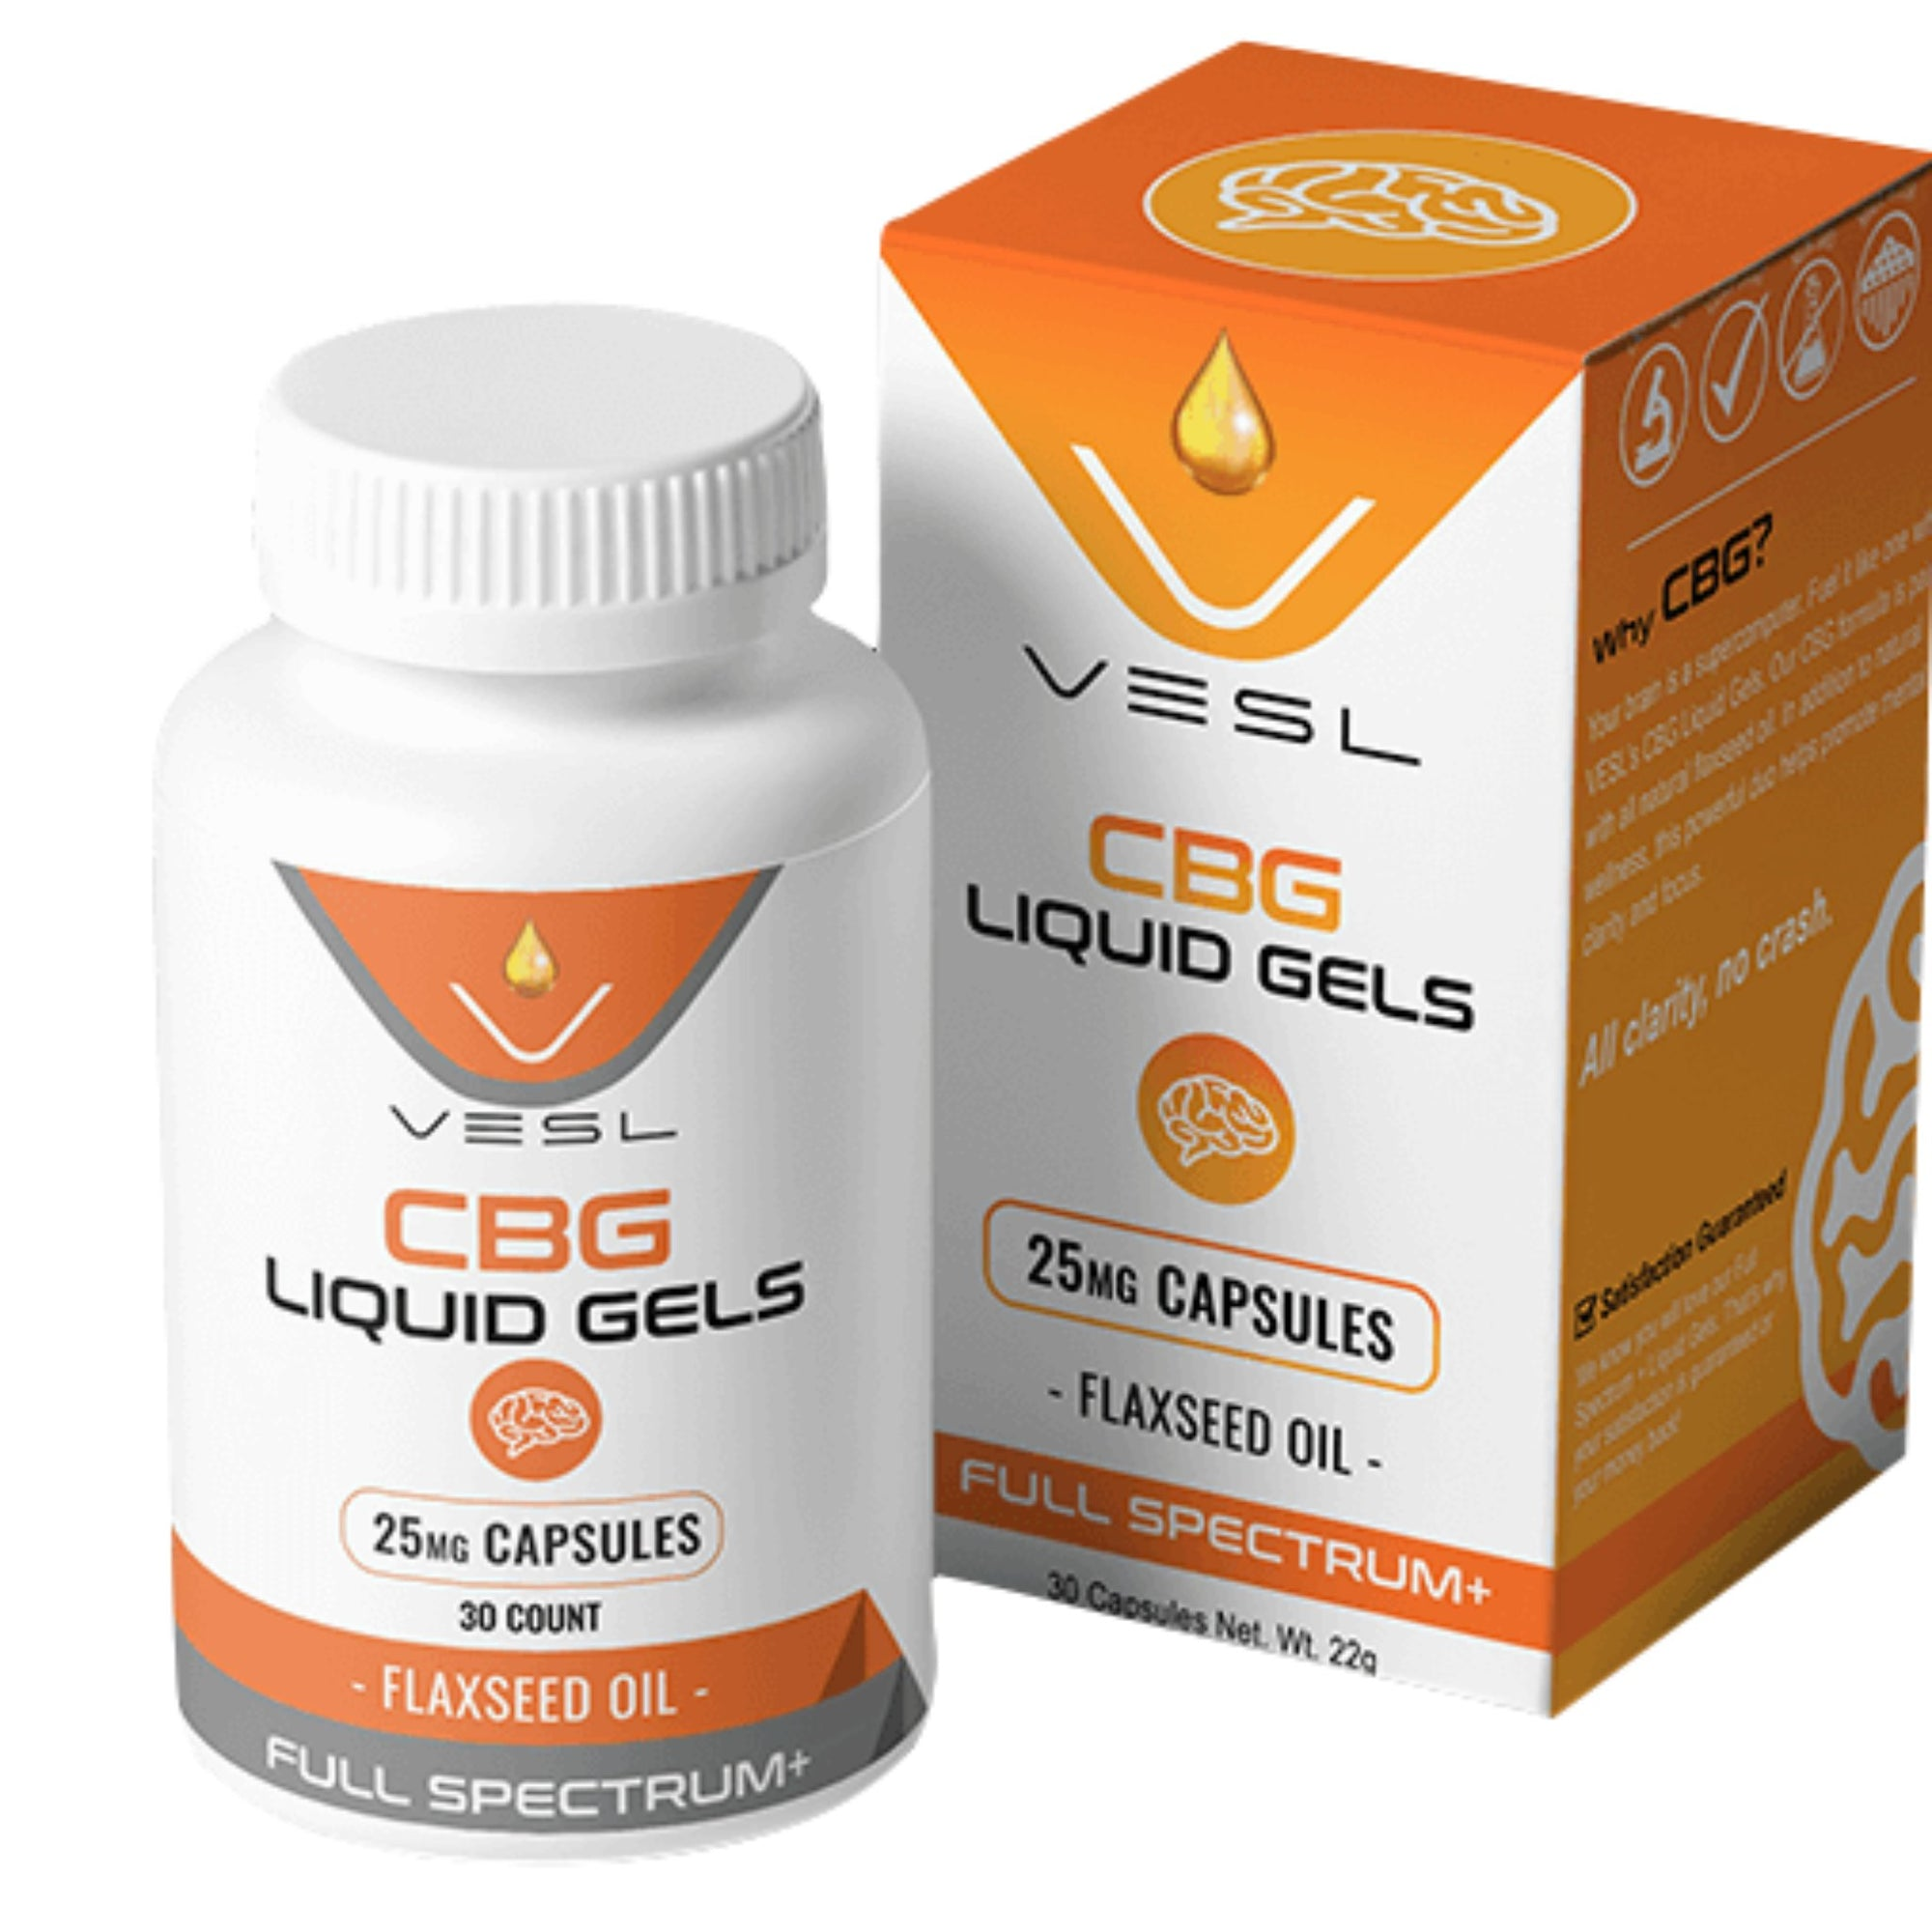 White container orange and gray design wordings of 750mg Vesl Oils CBG Flaxseed Capsules orange and white box on right